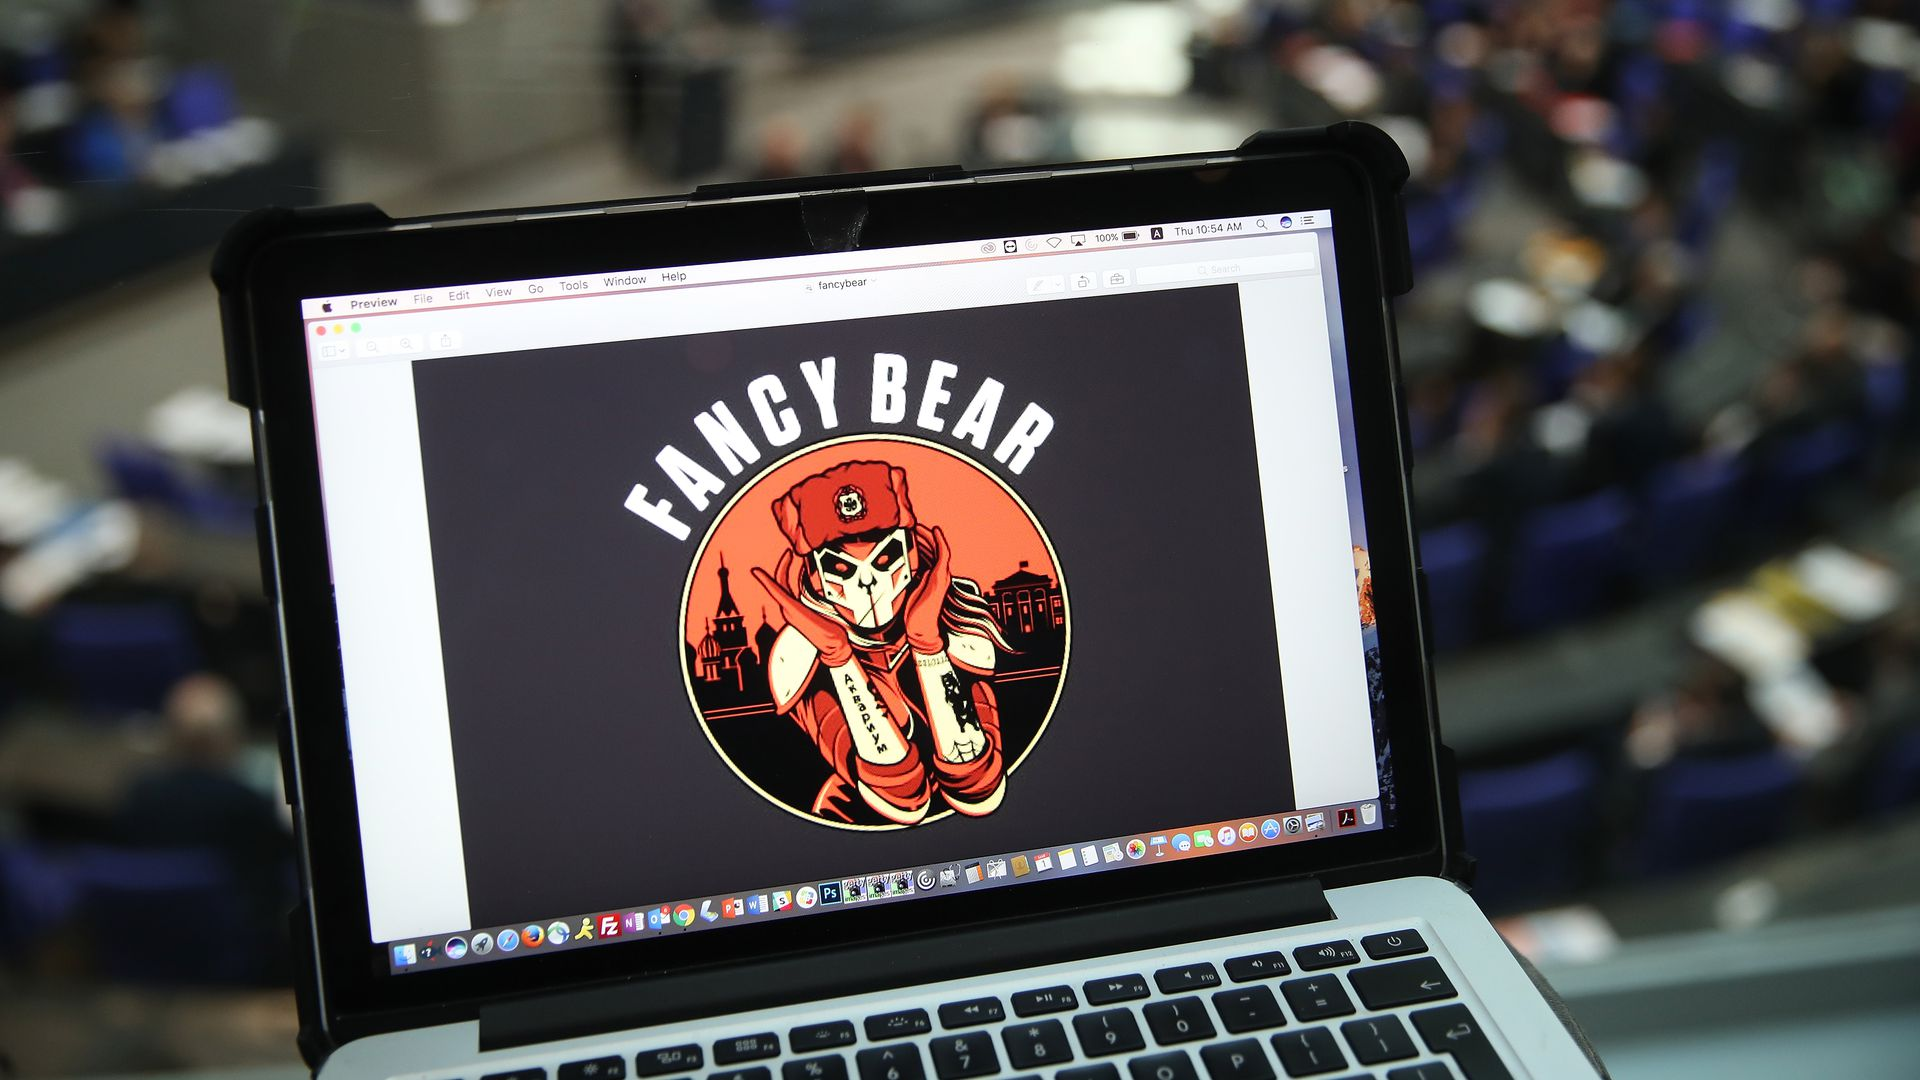 Laptop with Fancy Bear logo